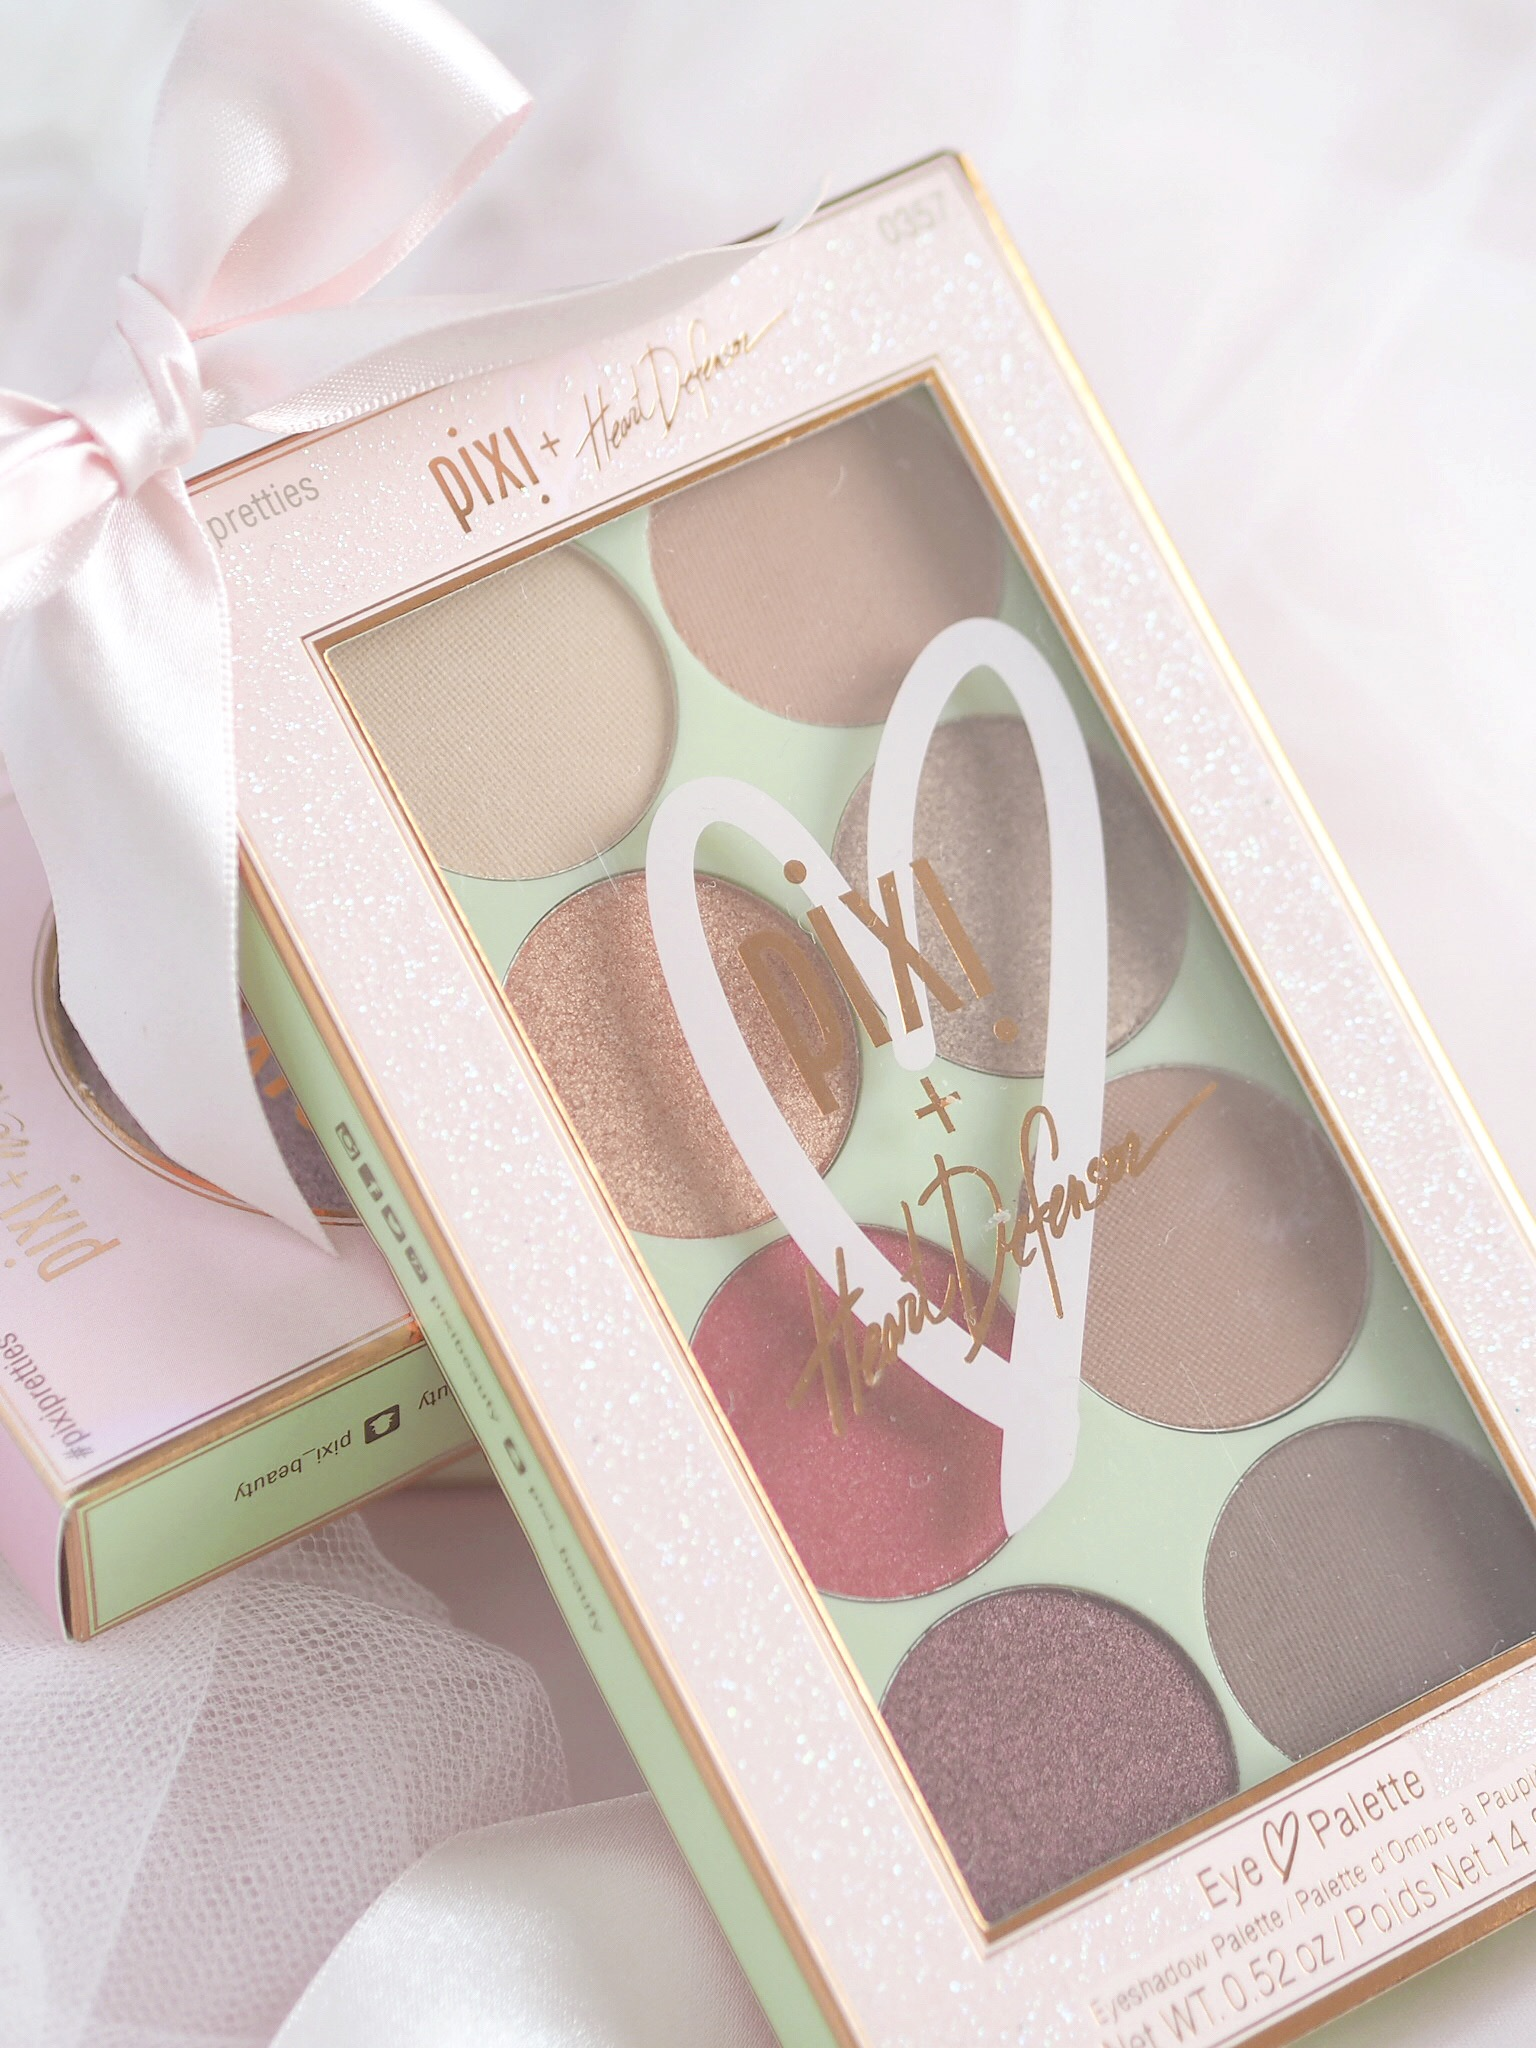 Eye Heart Palette ~ Pixi Pretties Collection by Pixi Beauty